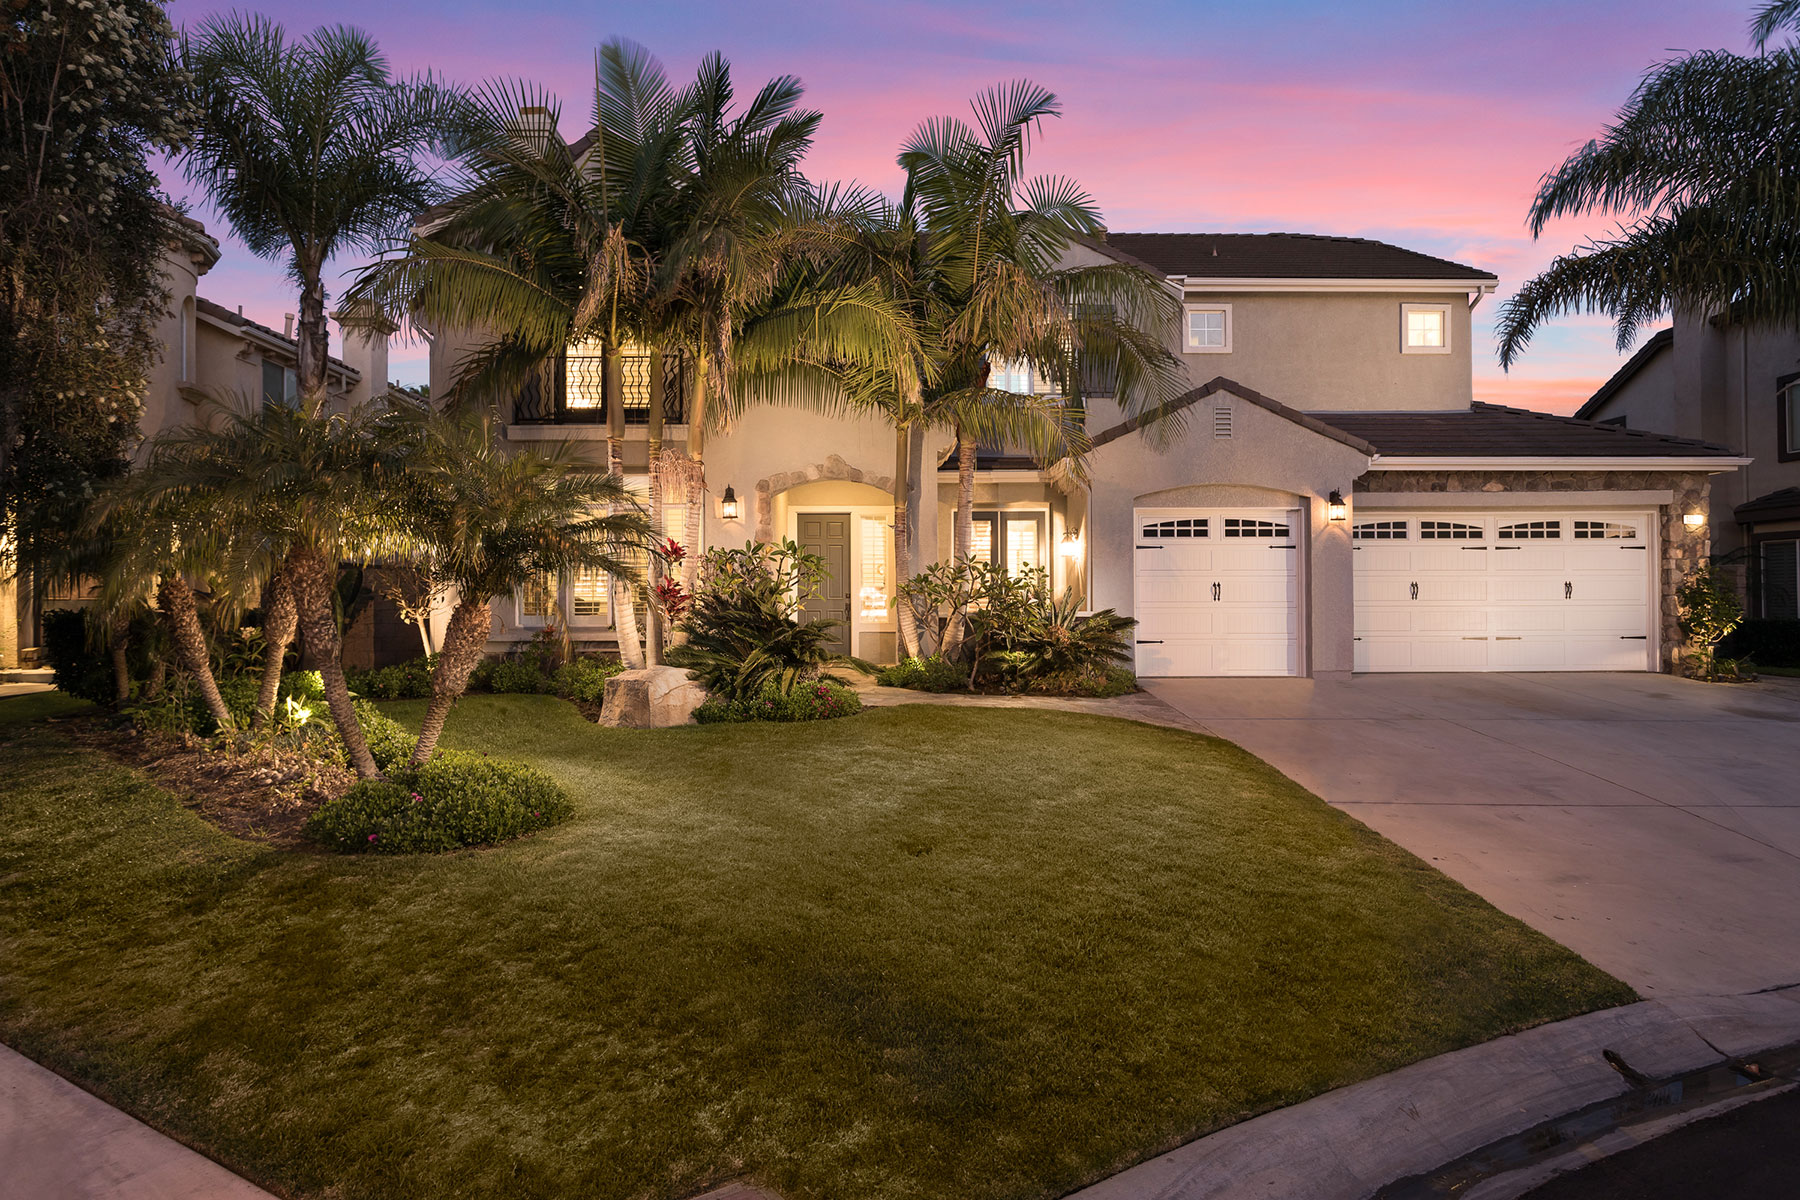 Single Family Home for Sale at 18542 Derby Huntington Beach, California 92648 United States